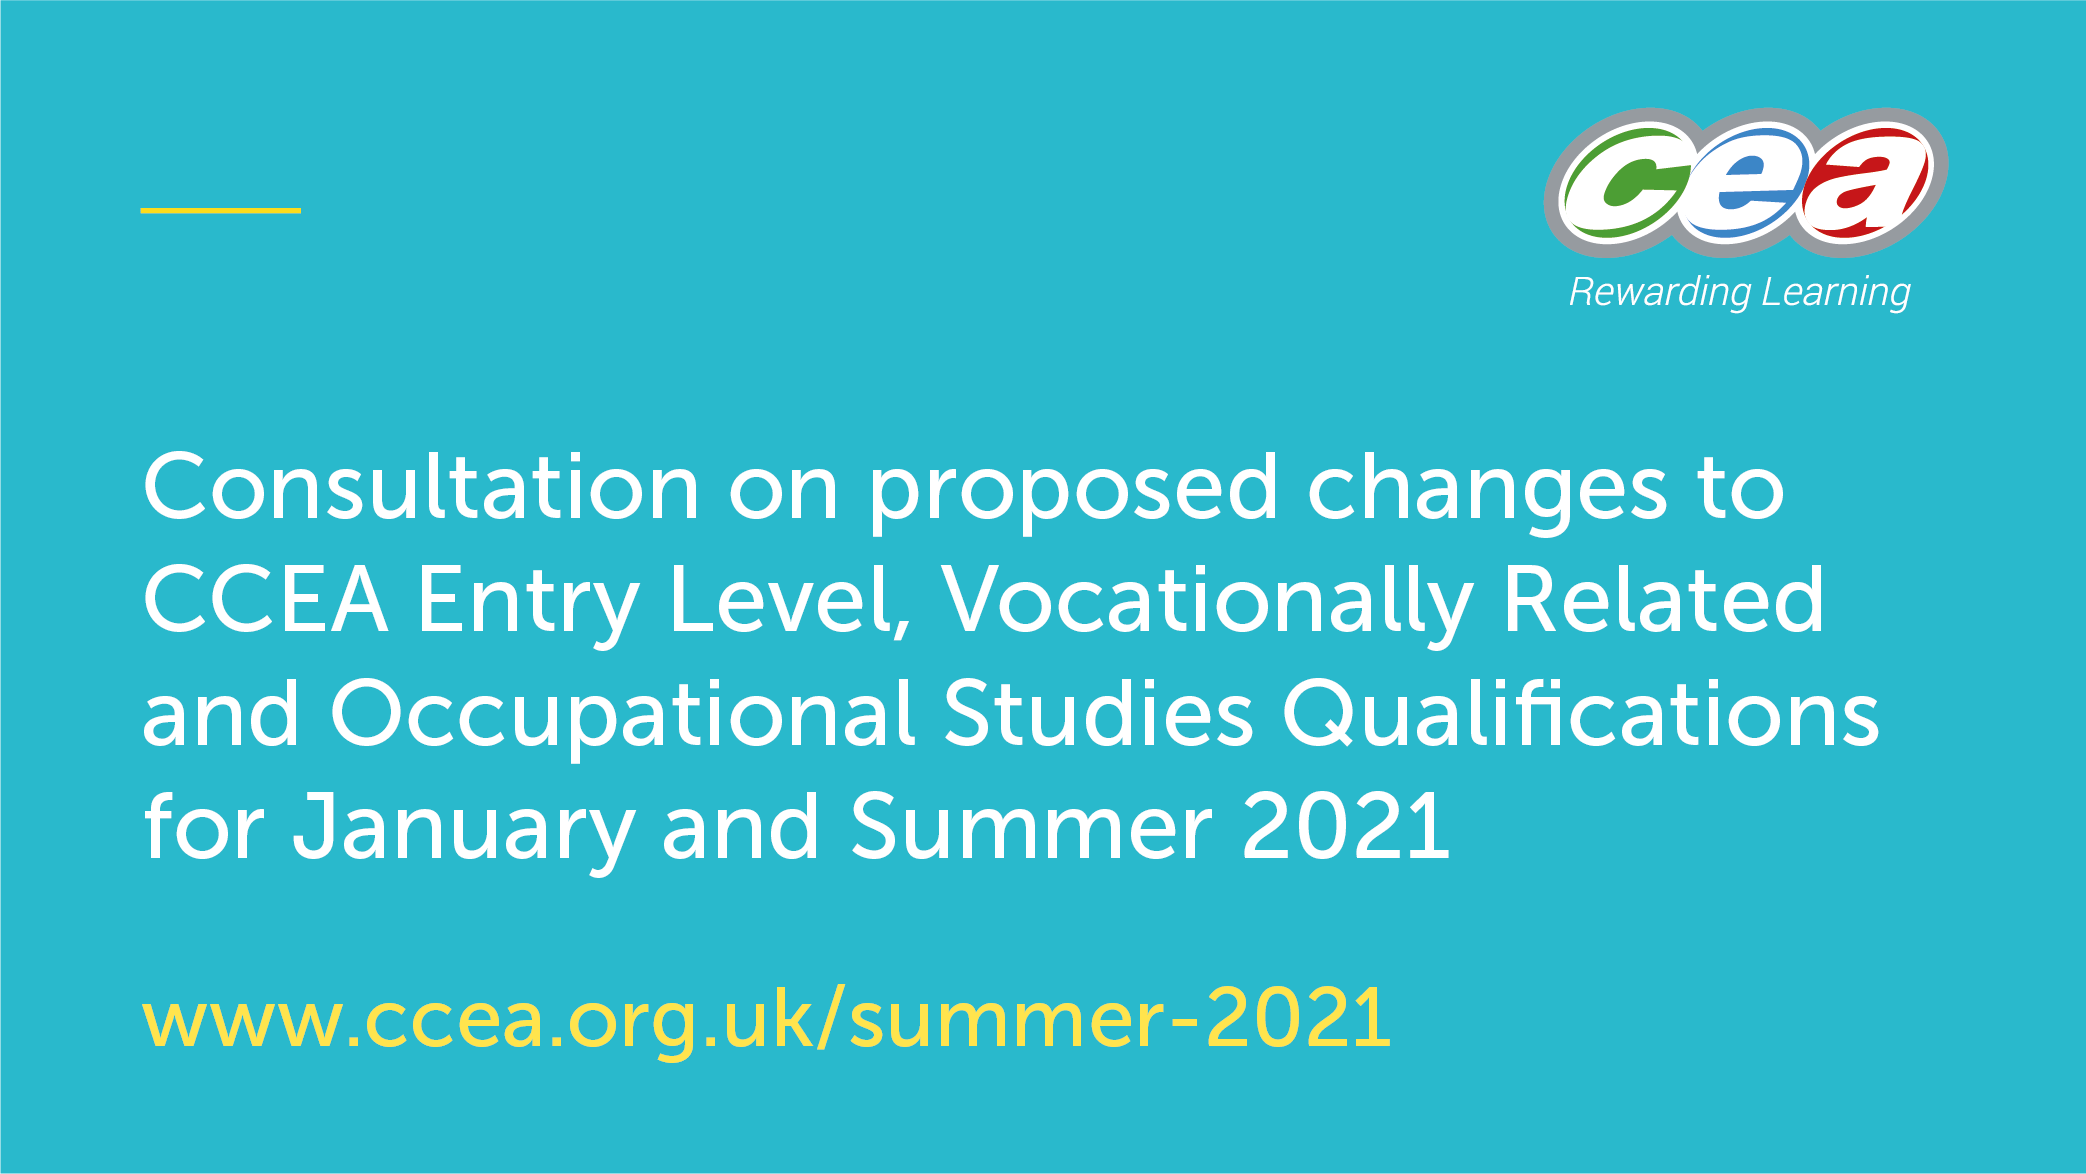 CCEA Launches Consultation on Proposed Changes to CCEA Entry Level, Vocationally Related and Occupational Studies Qualifications for January and Summer 2021